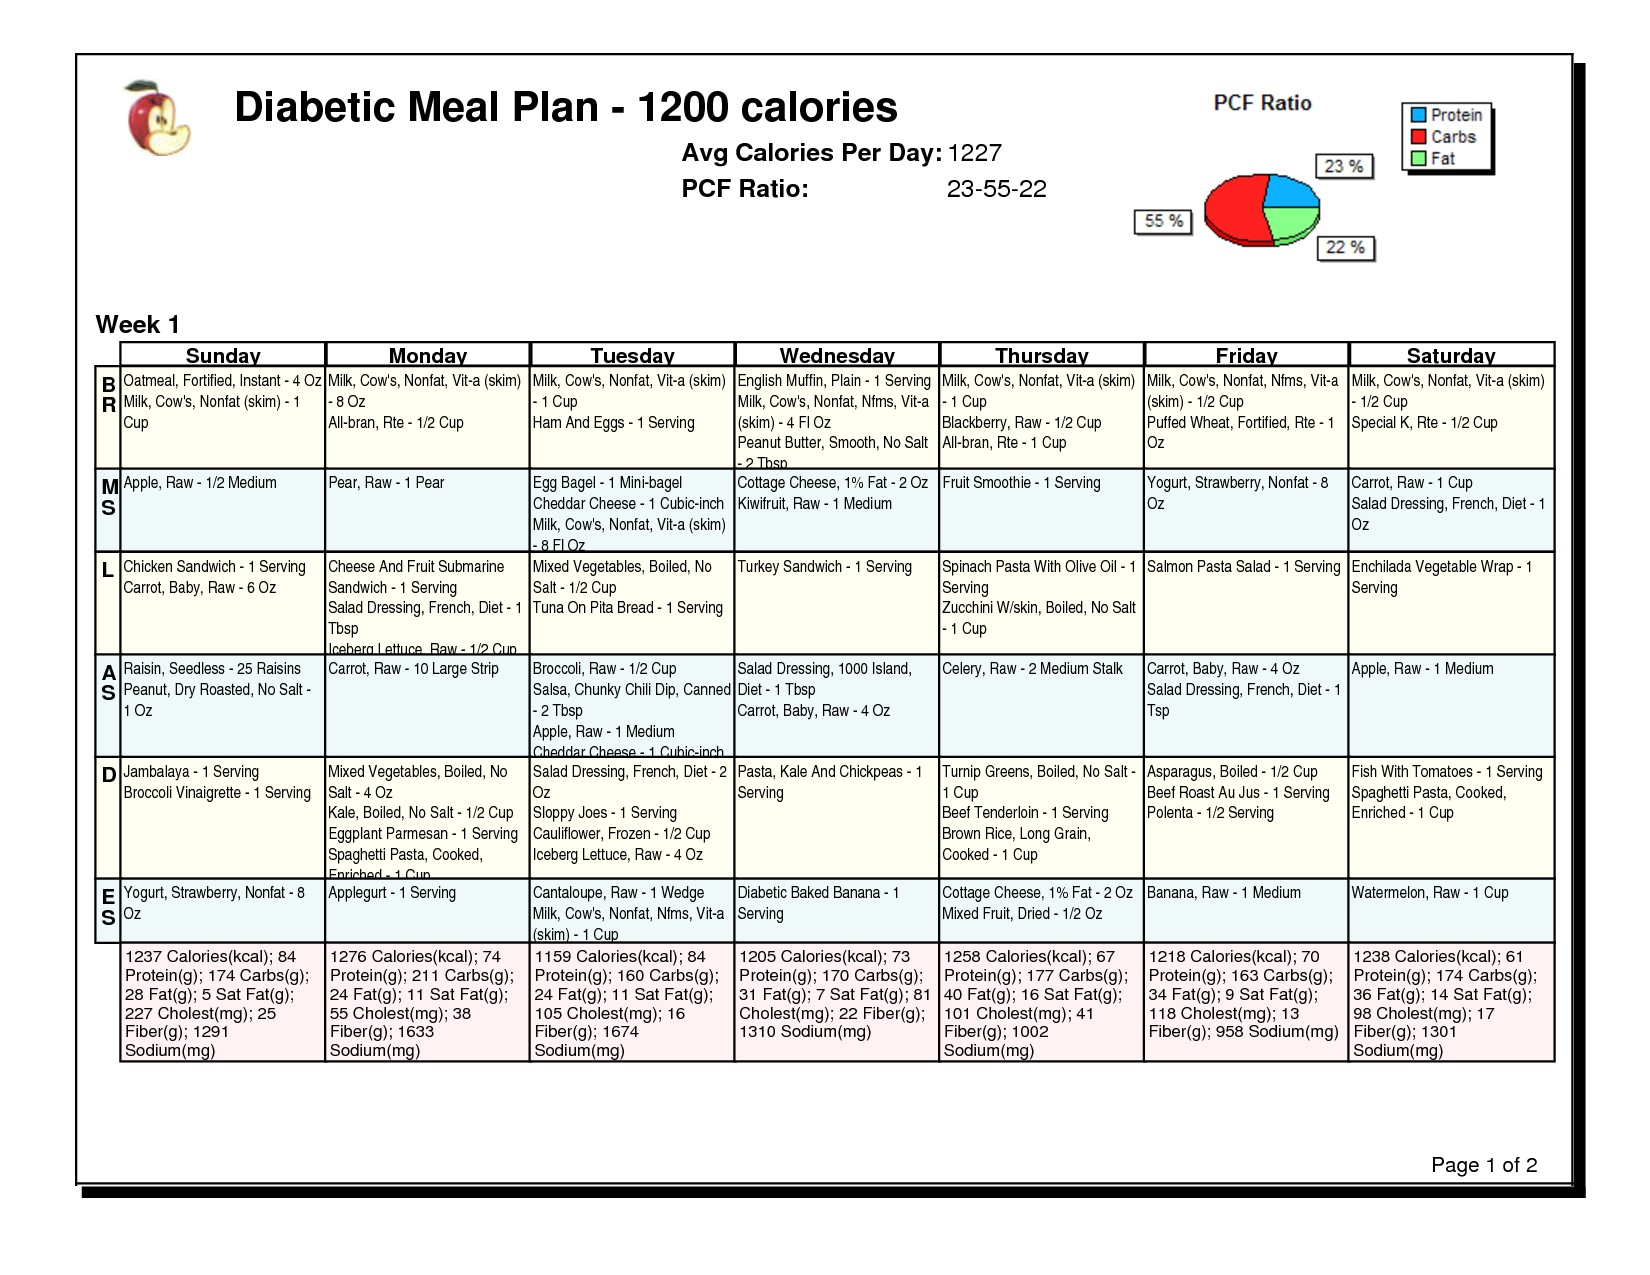 002 Meal Plan Template For Weight Loss Free Printable Plans Famous - Free Printable Meal Plans For Weight Loss